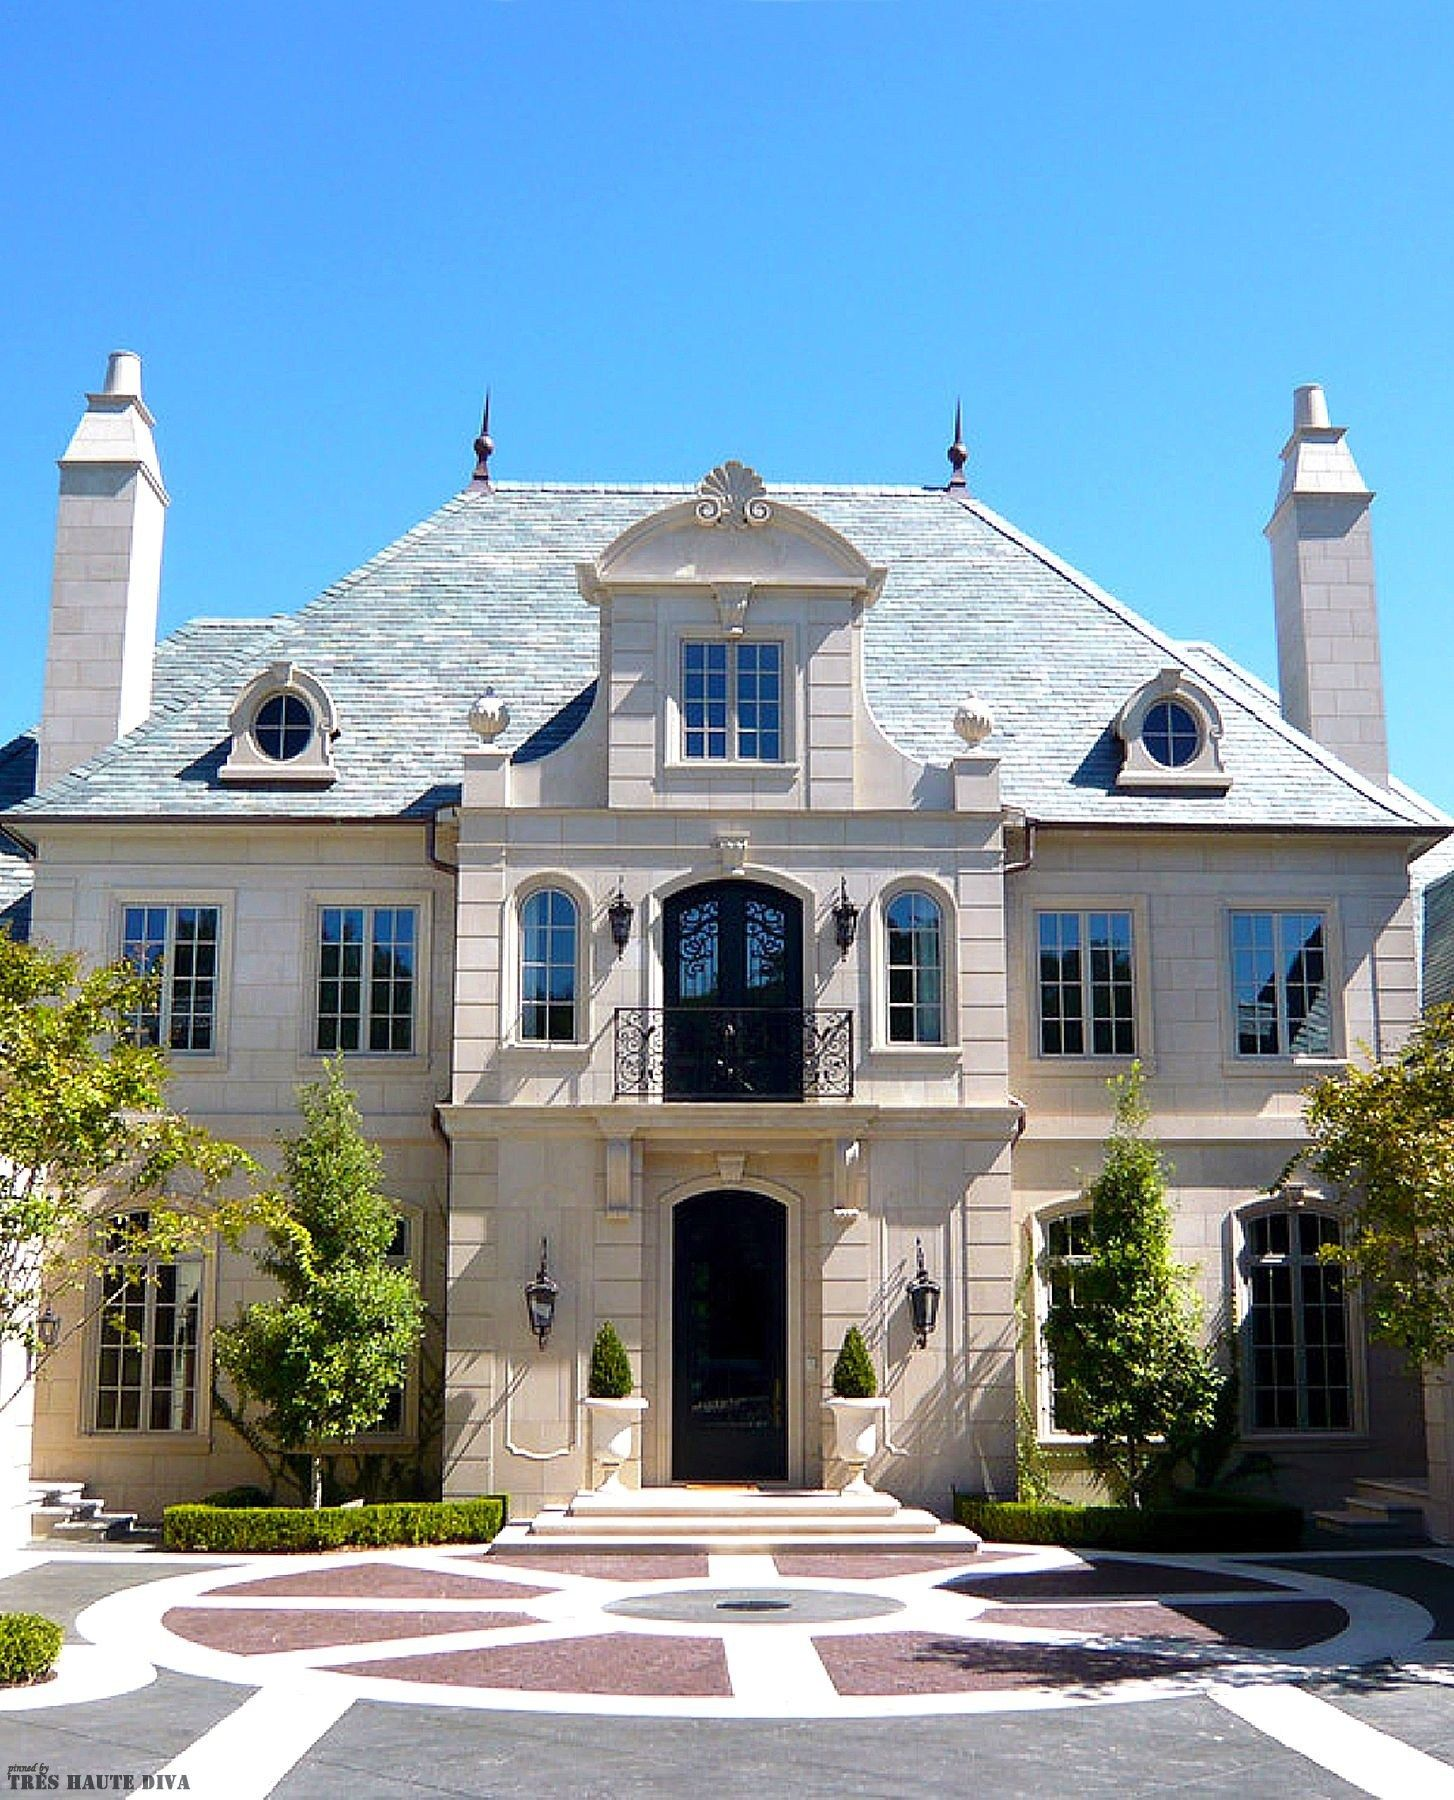 35 Wonderful French Country Exterior Ideas For Home Facade House French Architecture French House